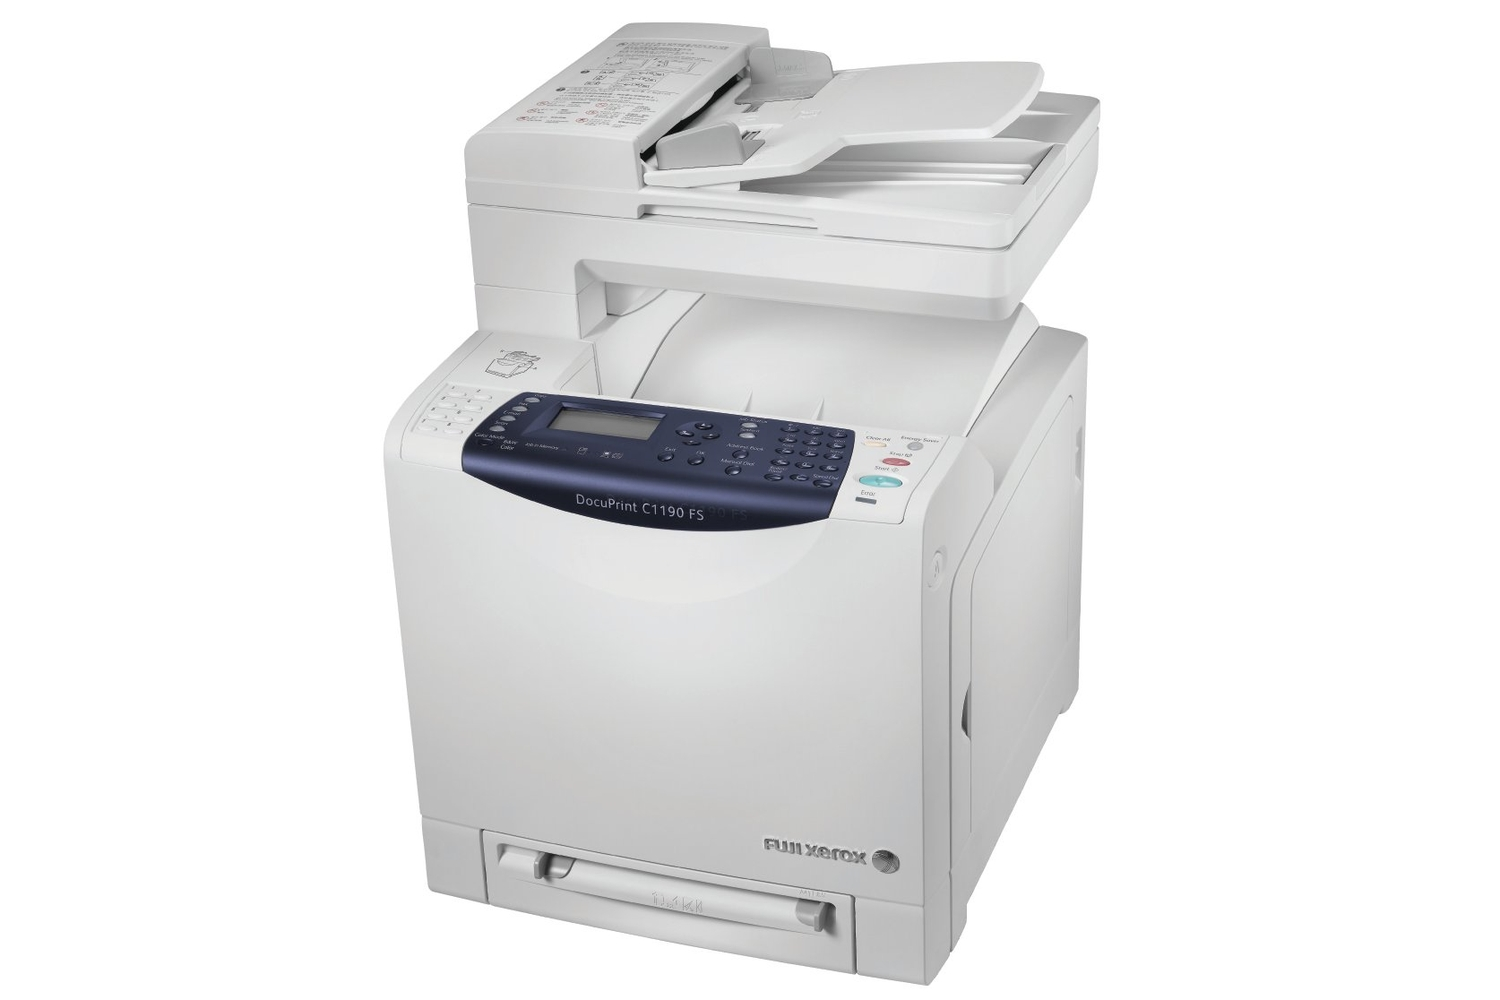 docuprint c3290 fs user guide